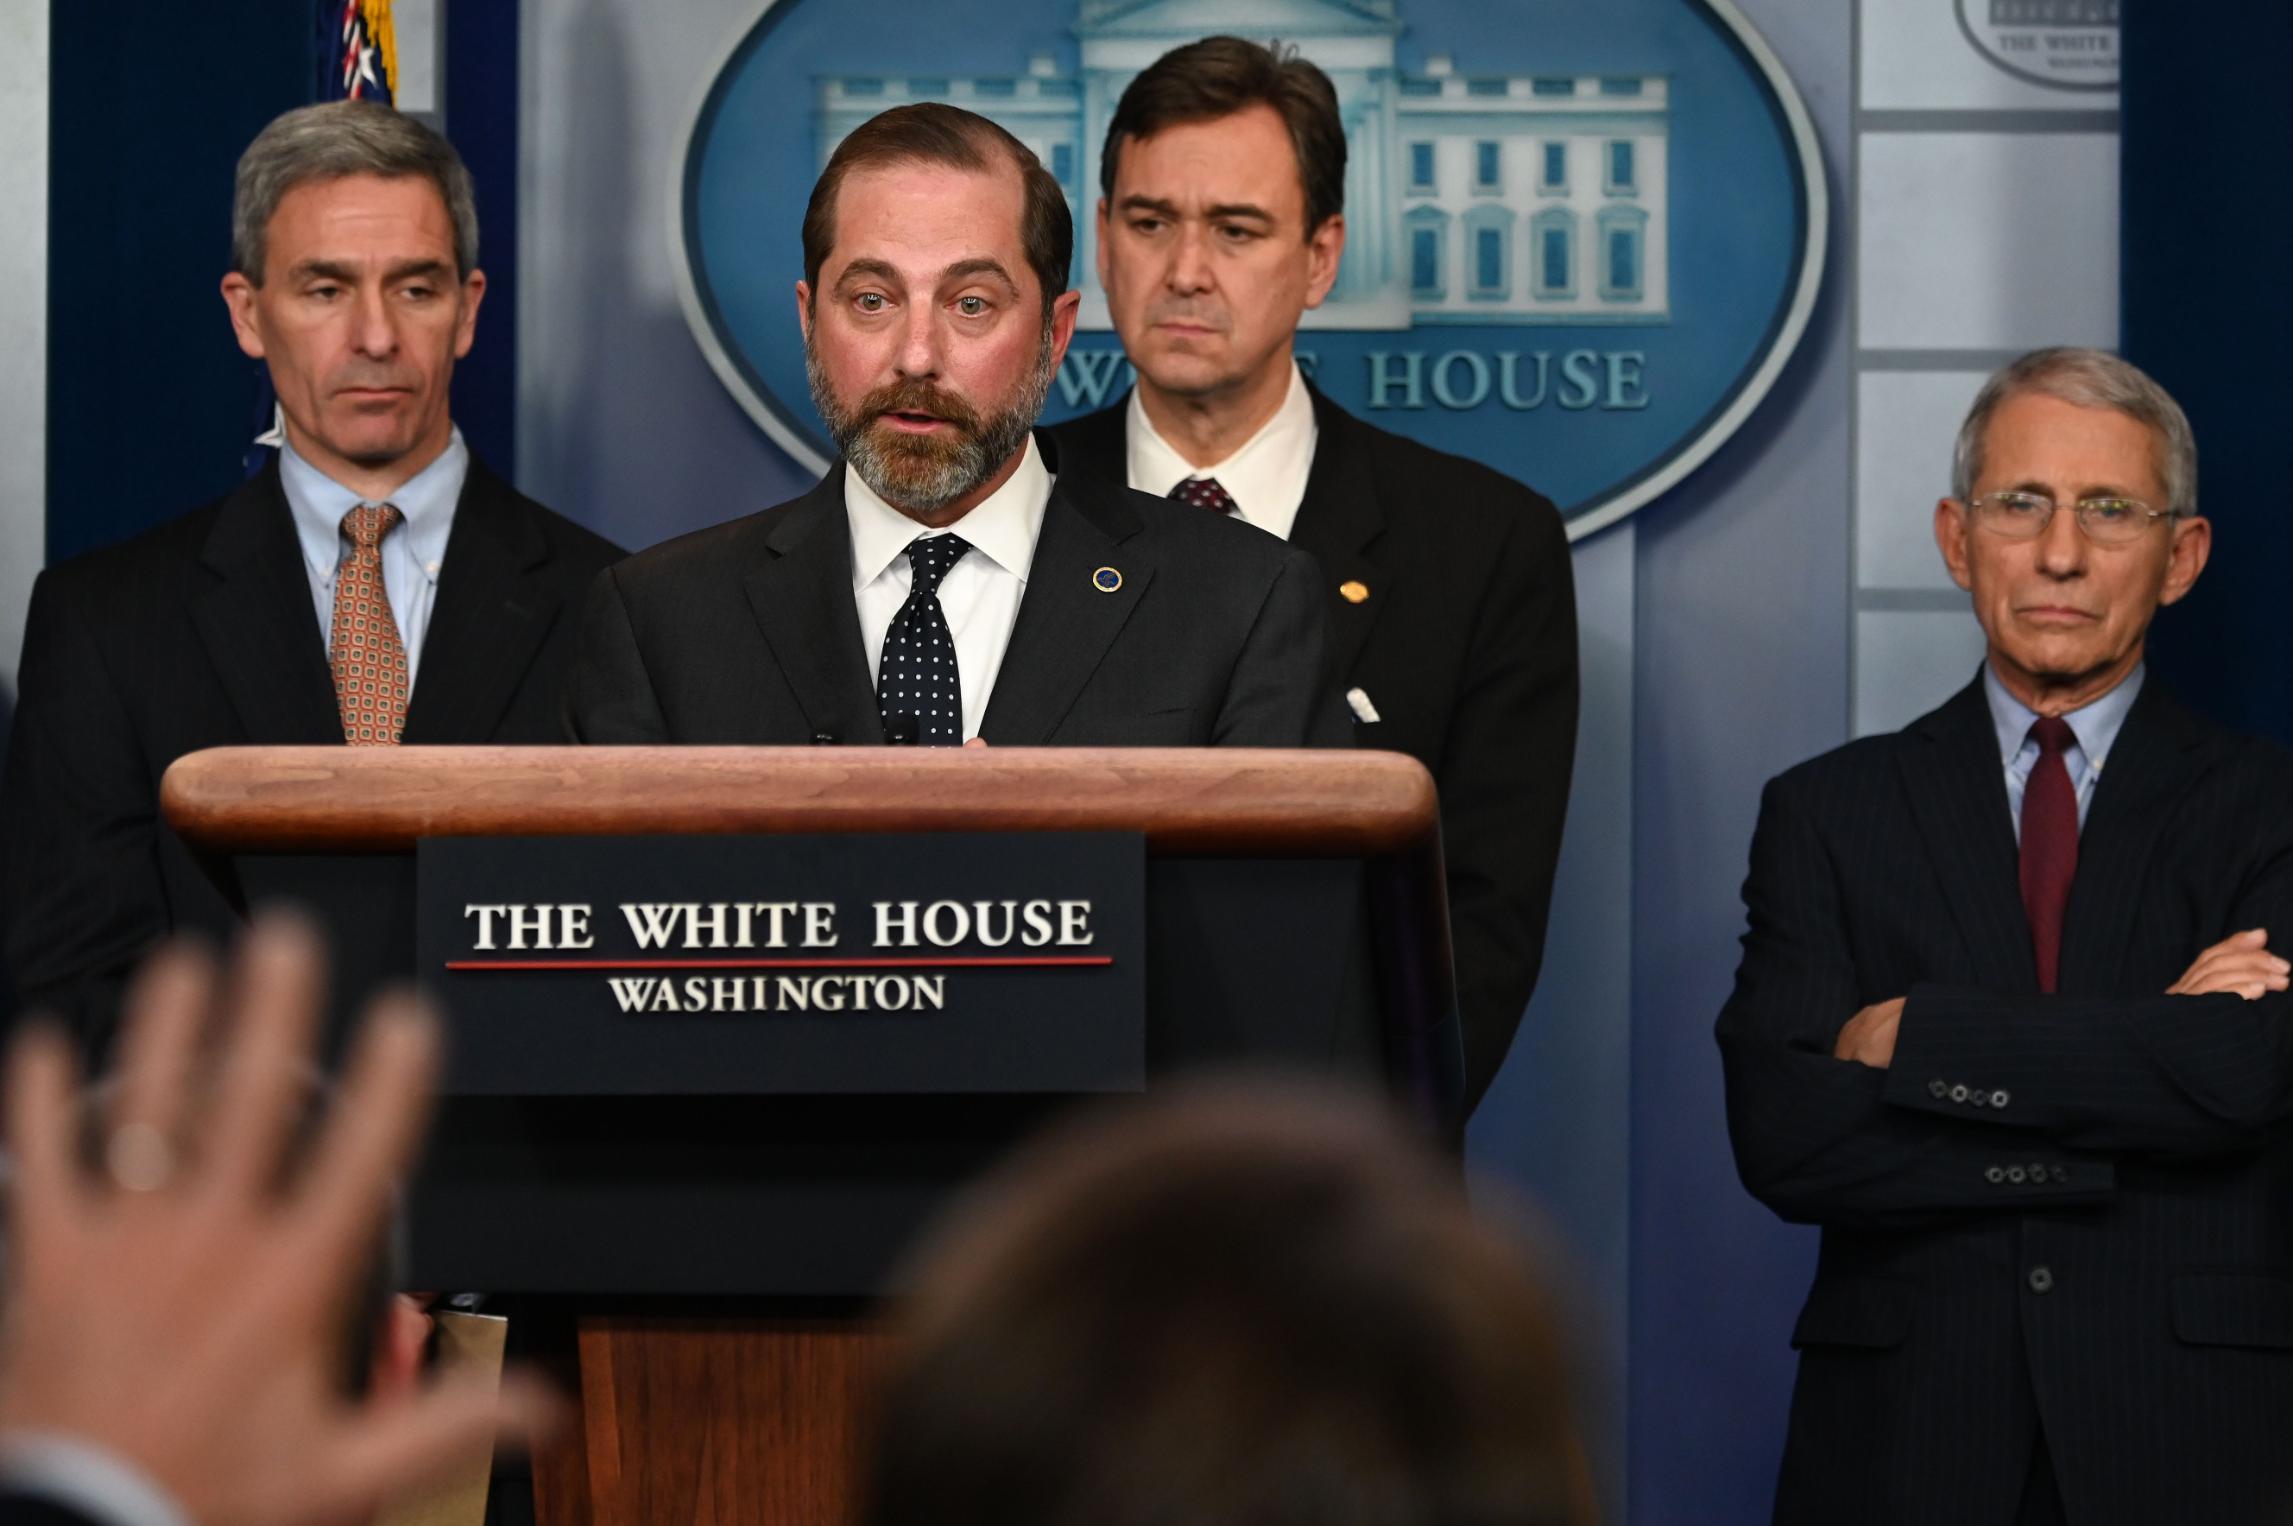 HHS whistleblower claims US workers received coronavirus evacuees without proper precautions